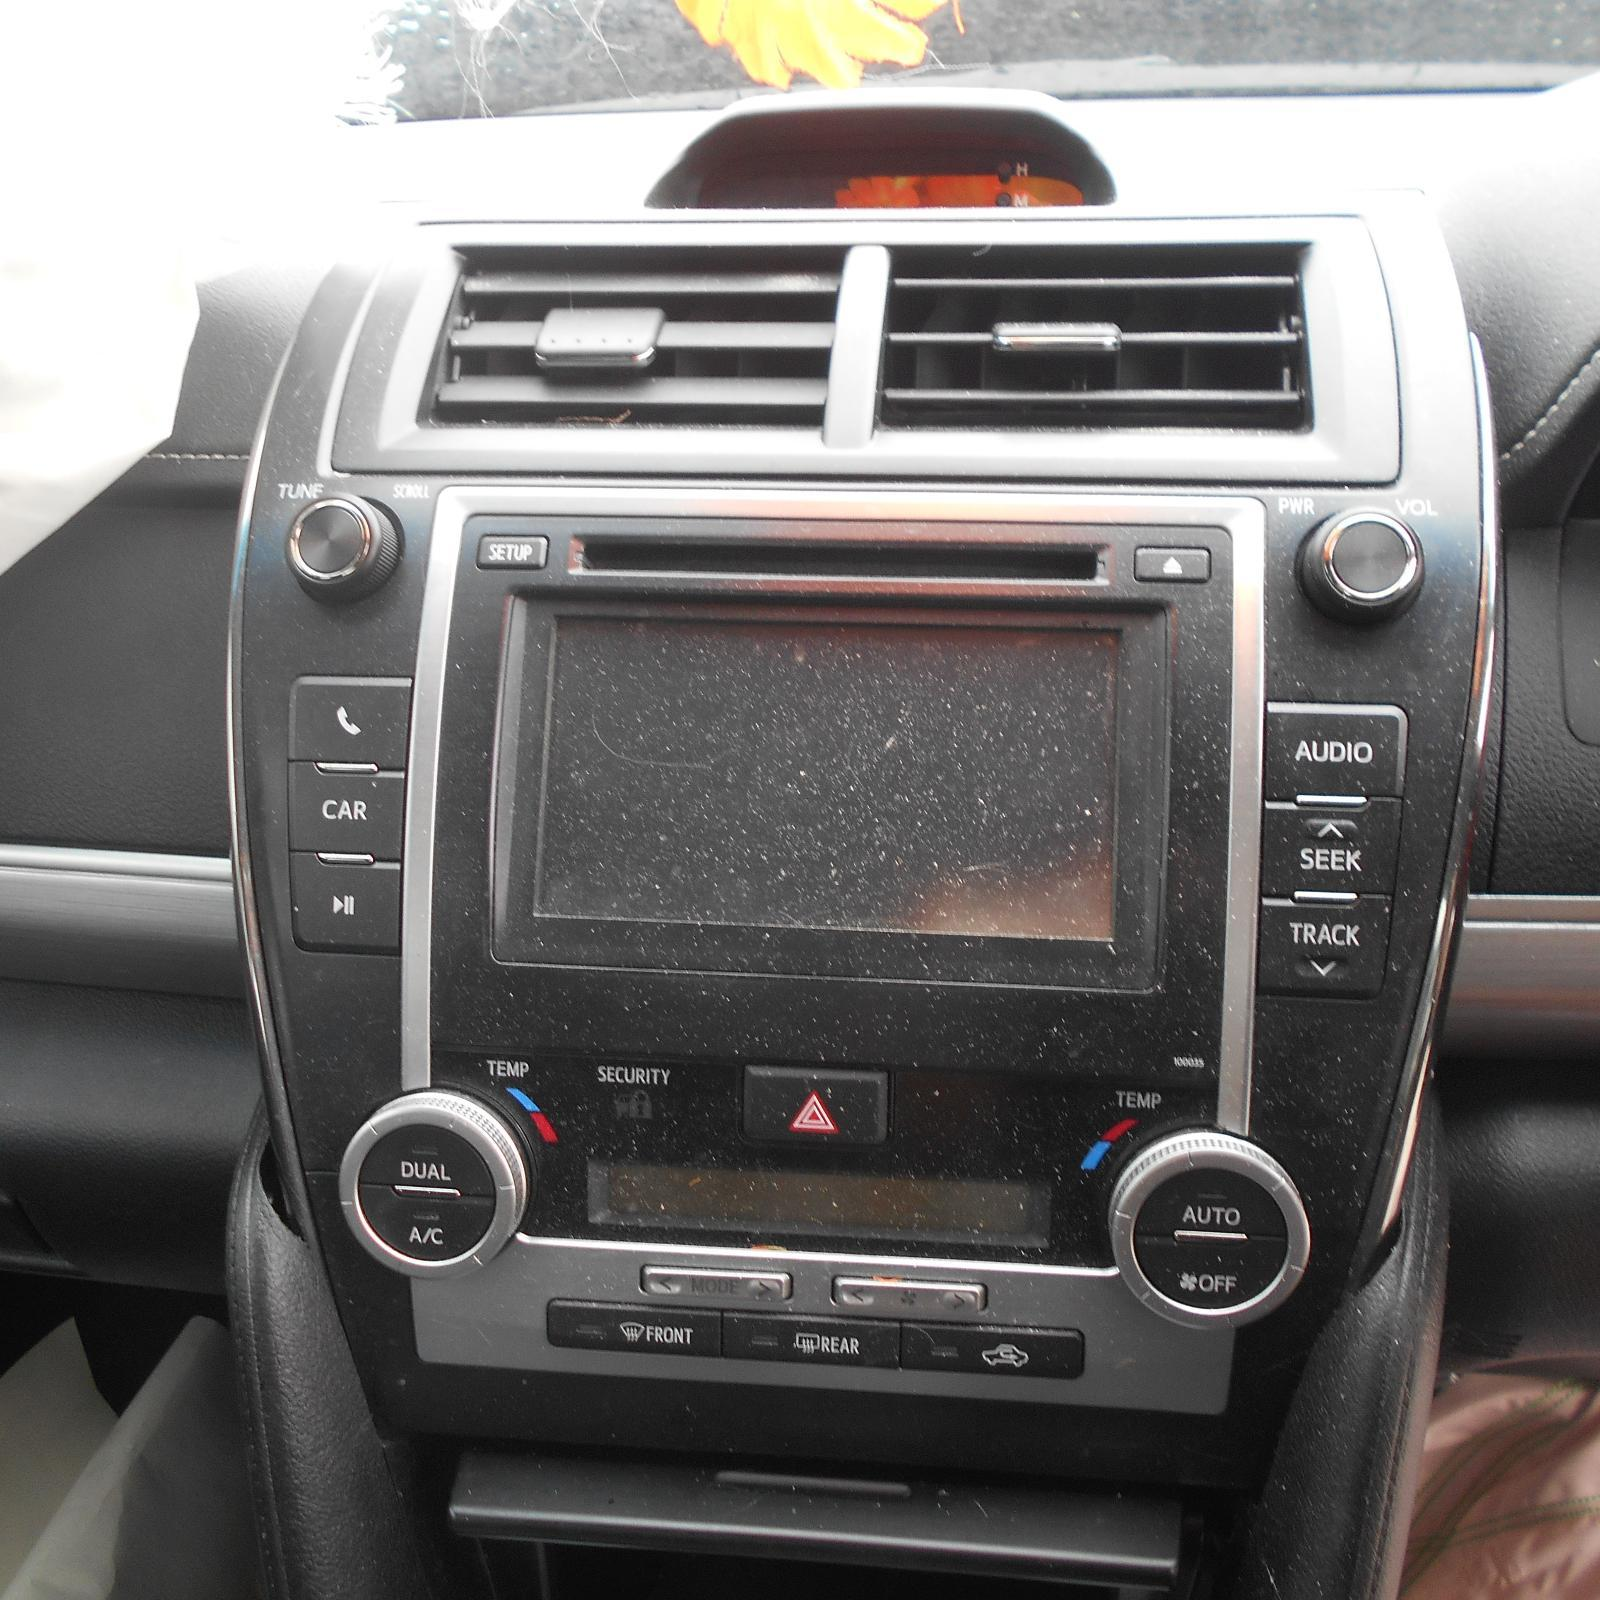 TOYOTA CAMRY, Radio/Cd/Dvd/Sat/Tv, CD PLAYER, TOUCH SCREEN, P/N ON FACE 100035, ACV50, 12/11-04/15